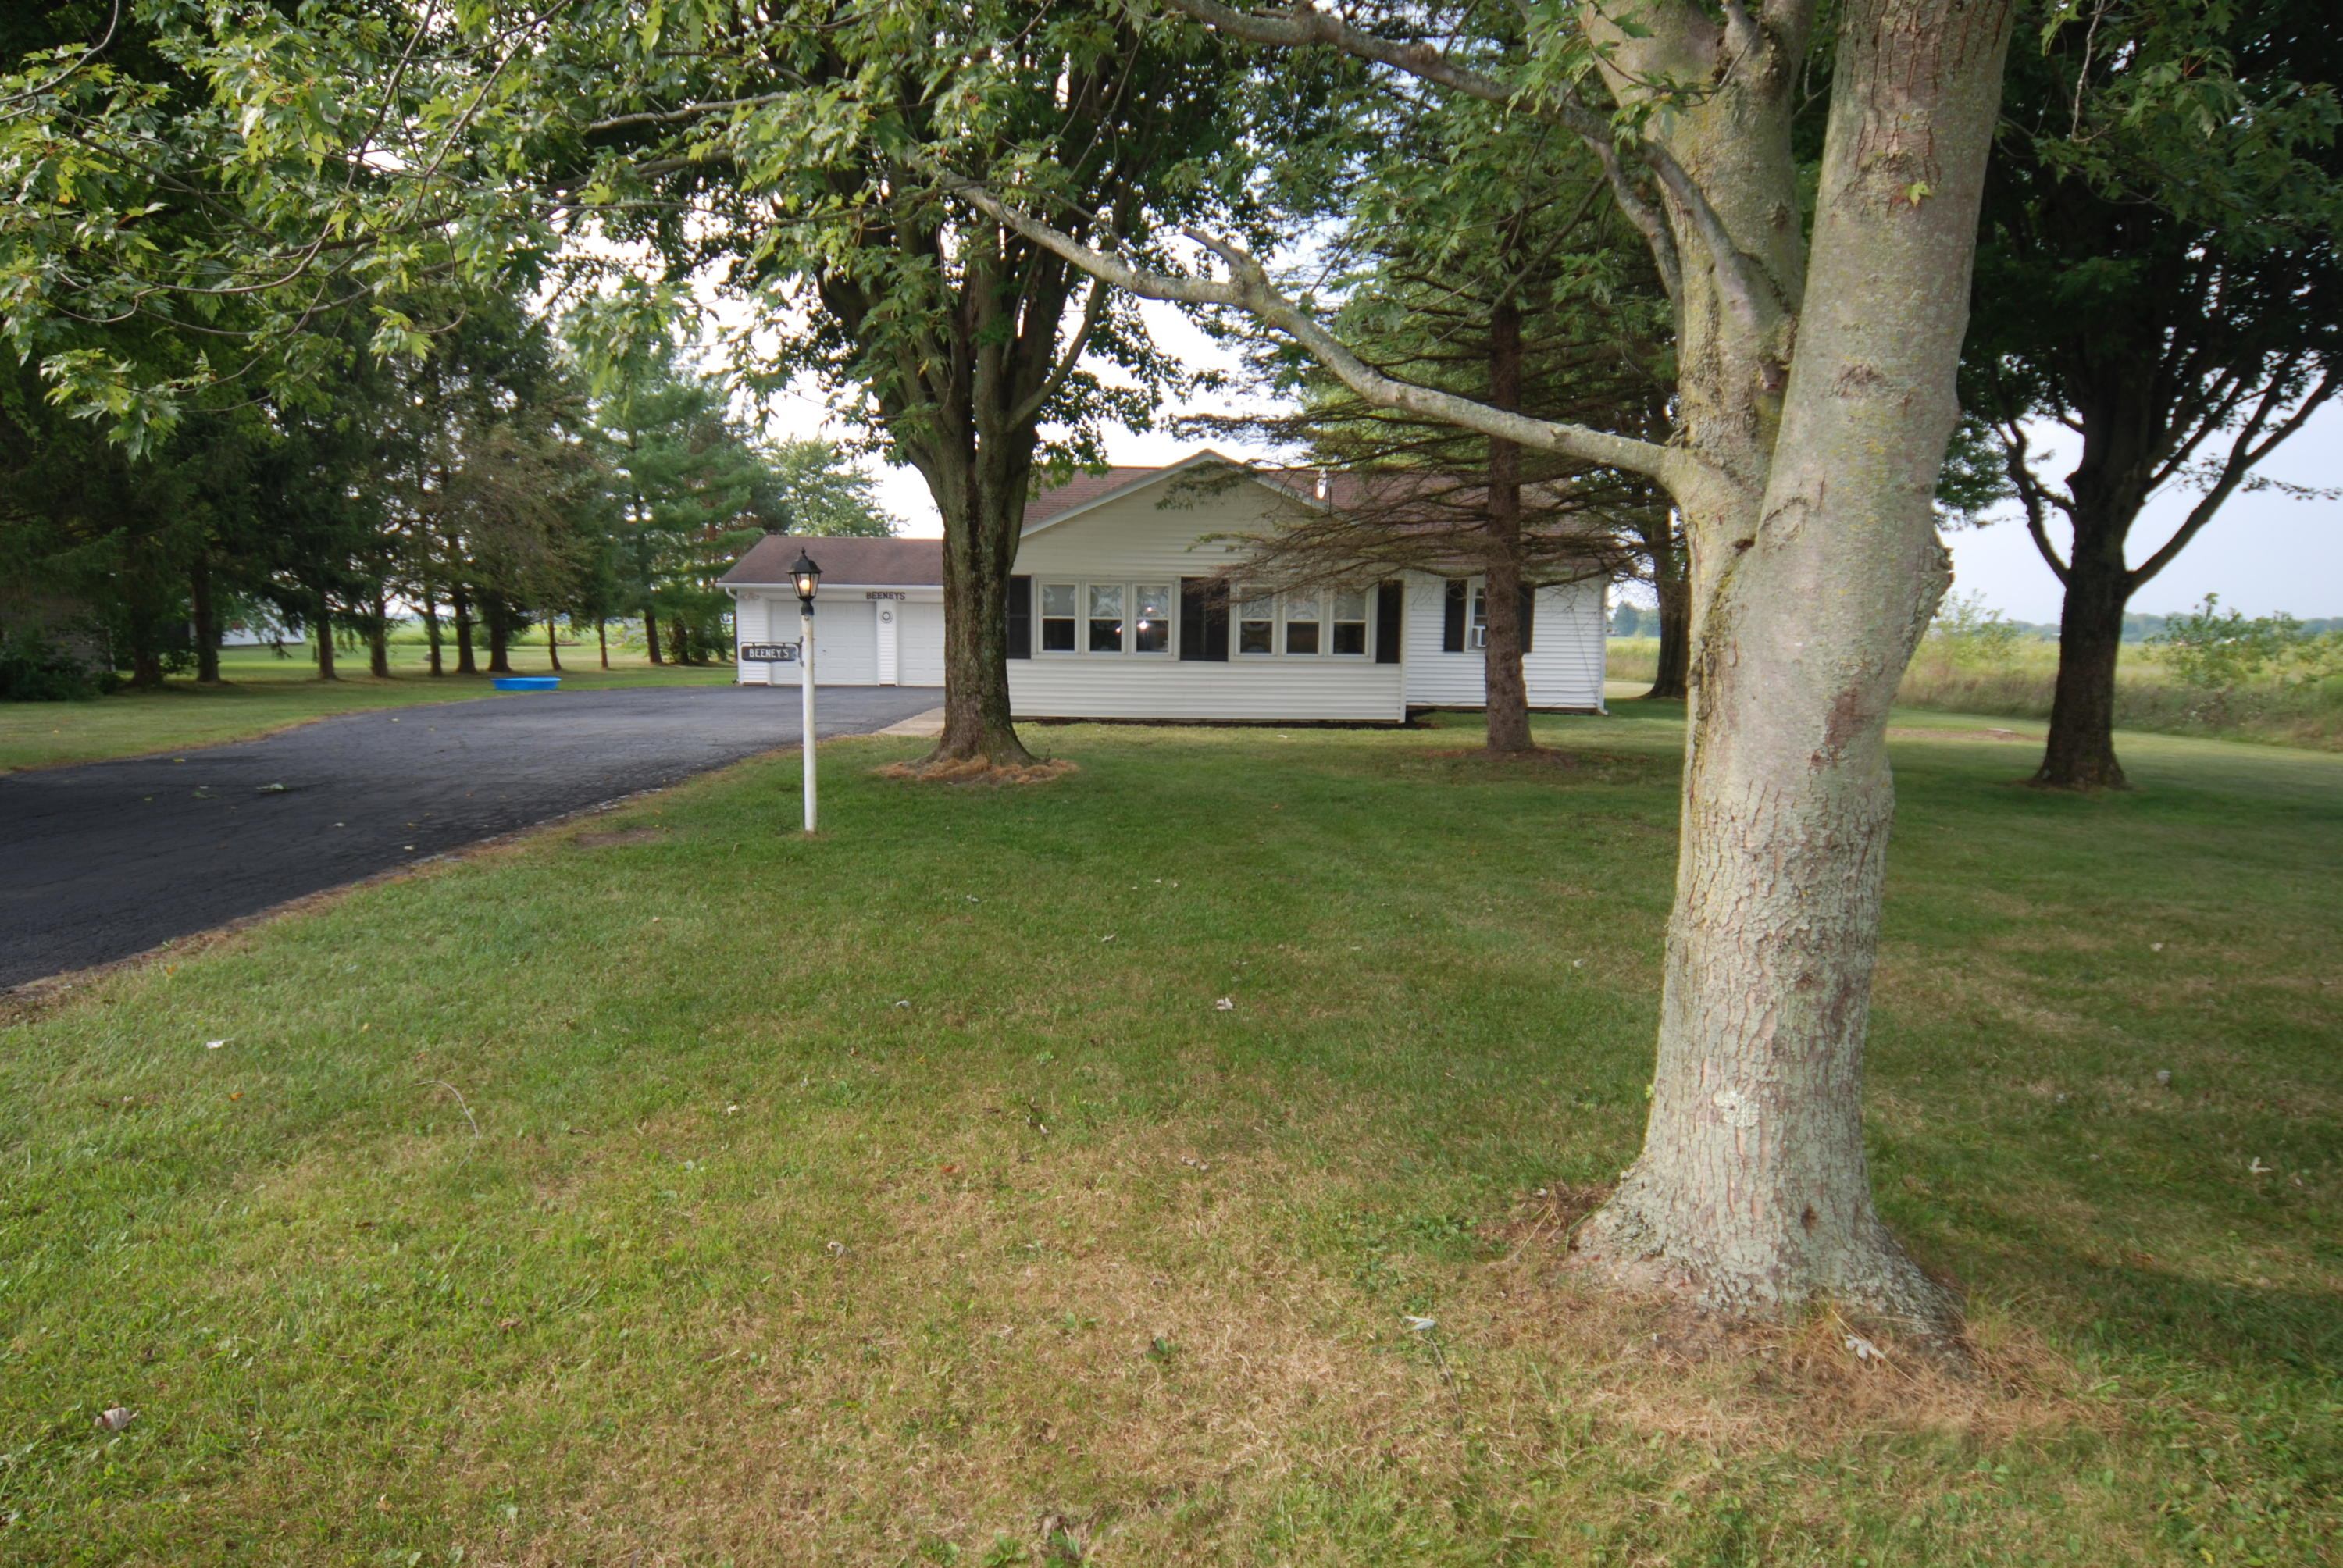 Photo 2 for 11285 Hoskins Rd Richwood, OH 43344